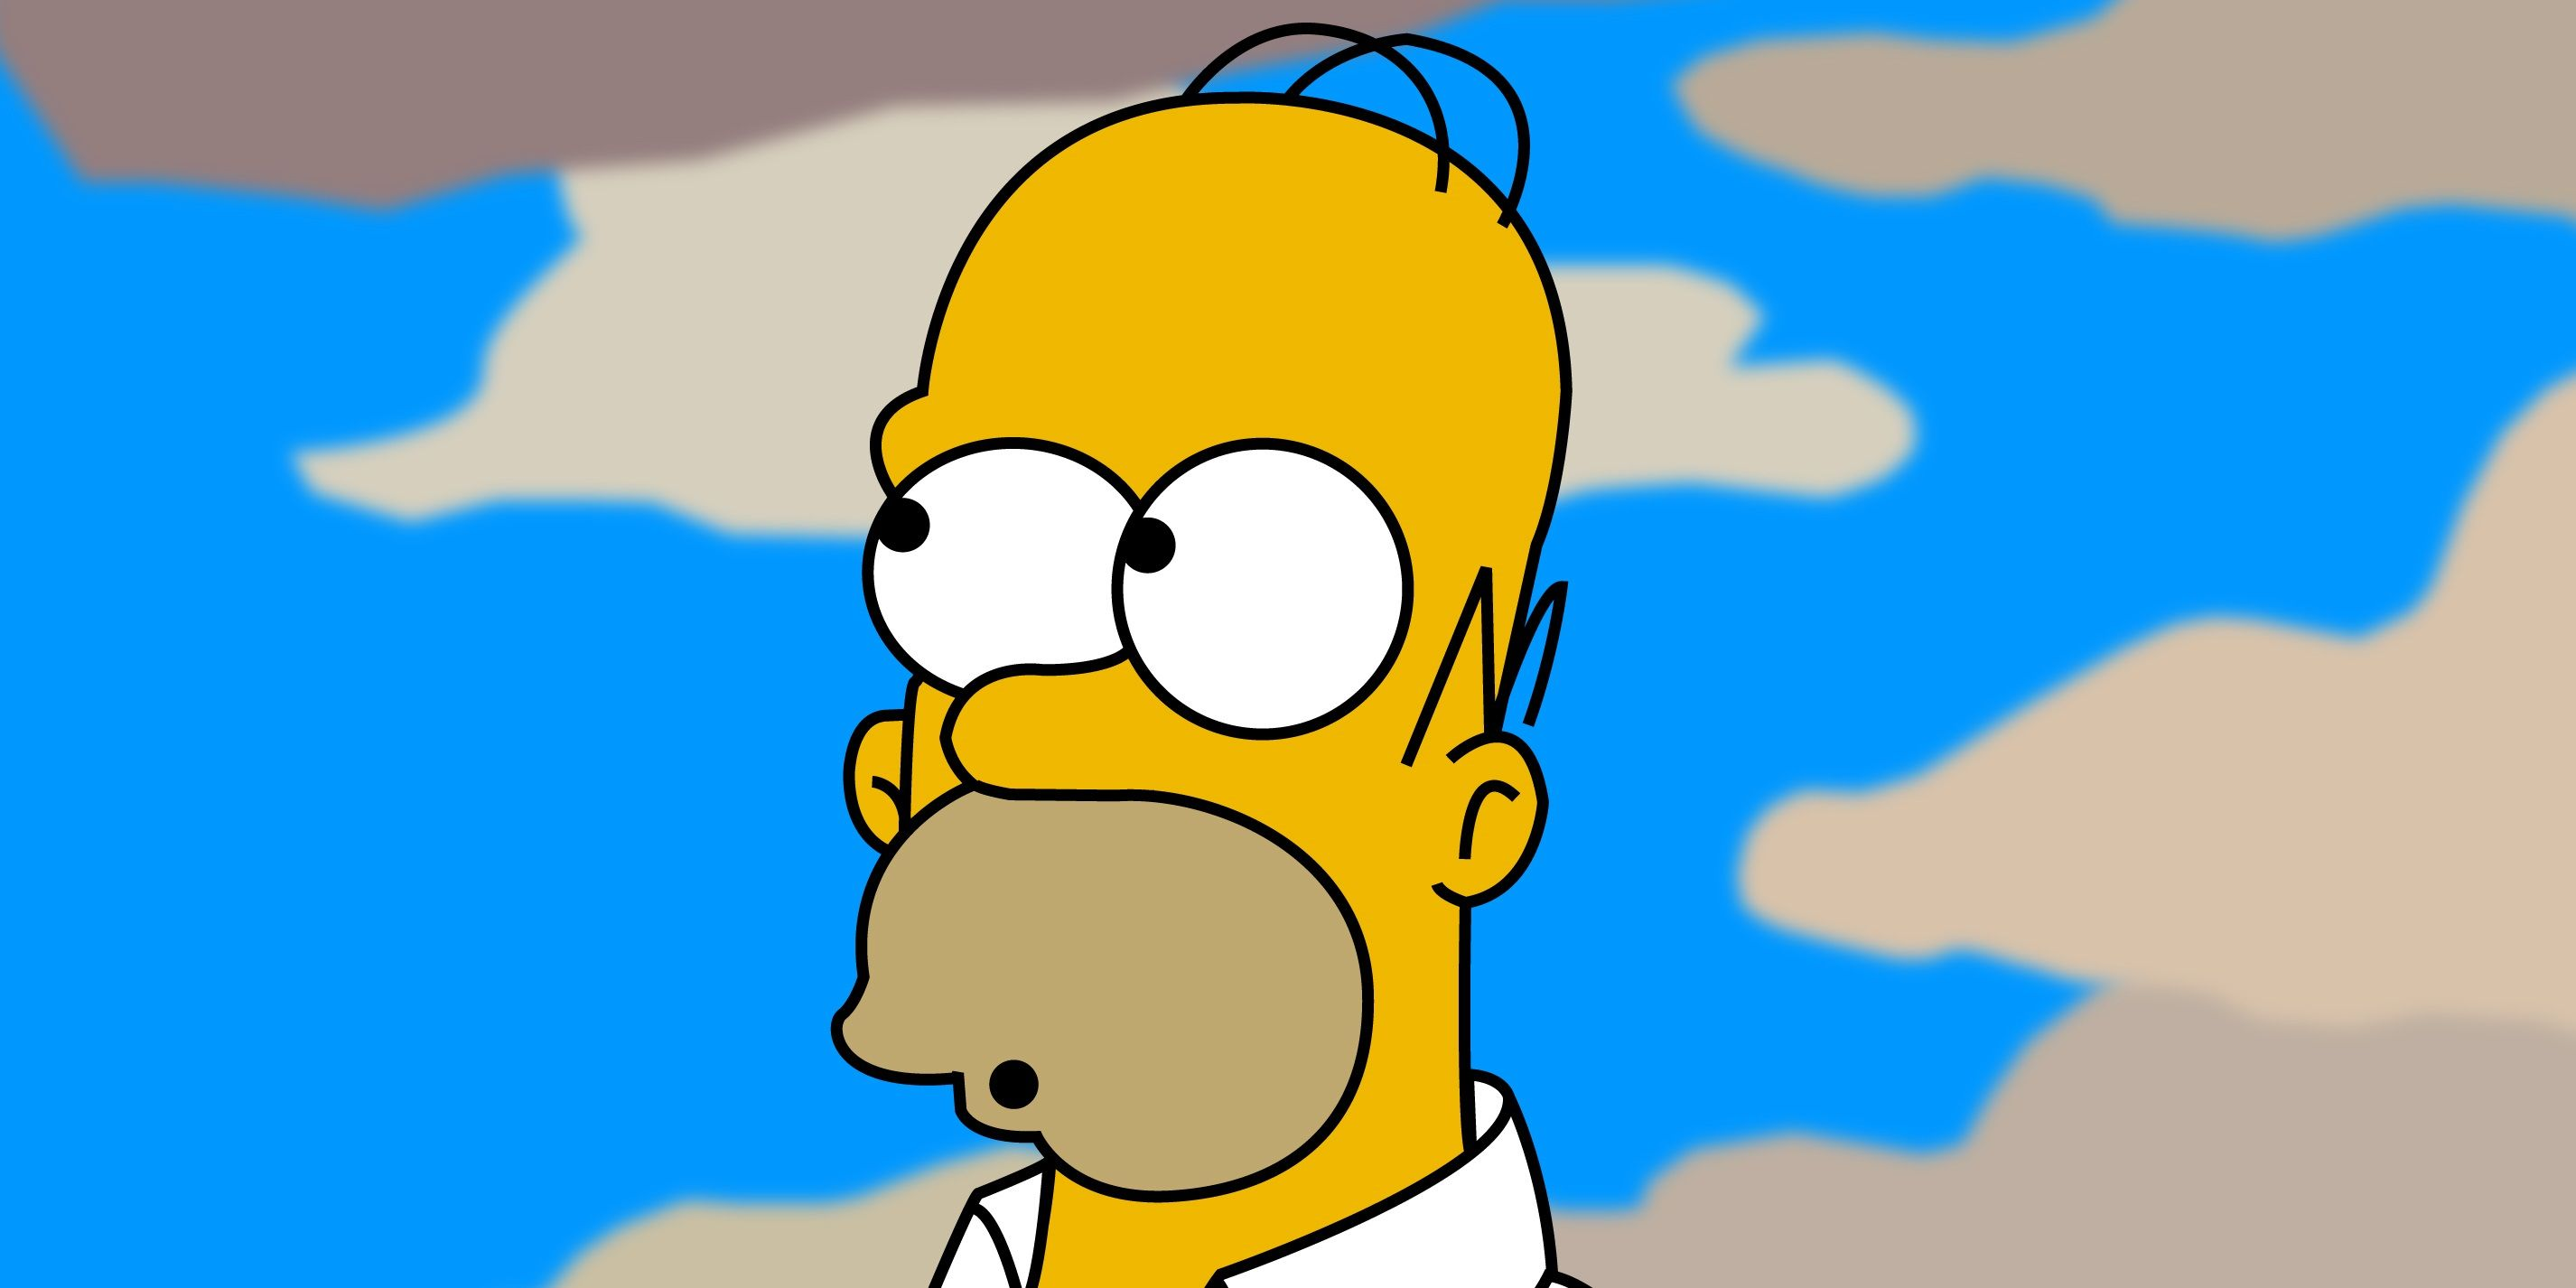 Simpson images - Homer simpson and bart simpson ...